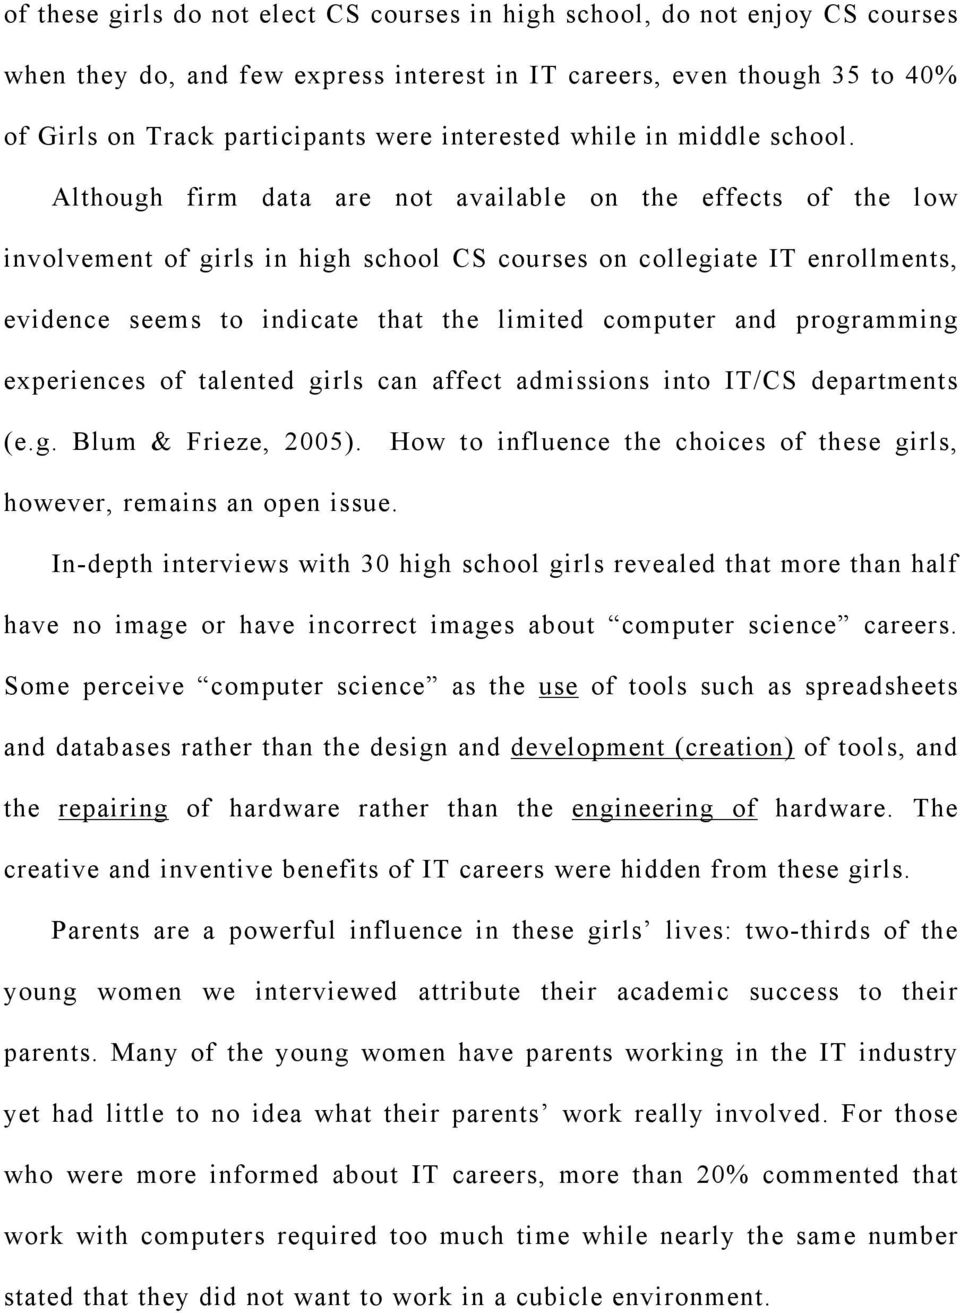 Although firm data are not available on the effects of the low involvement of girls in high school CS courses on collegiate IT enrollments, evidence seems to indicate that the limited computer and